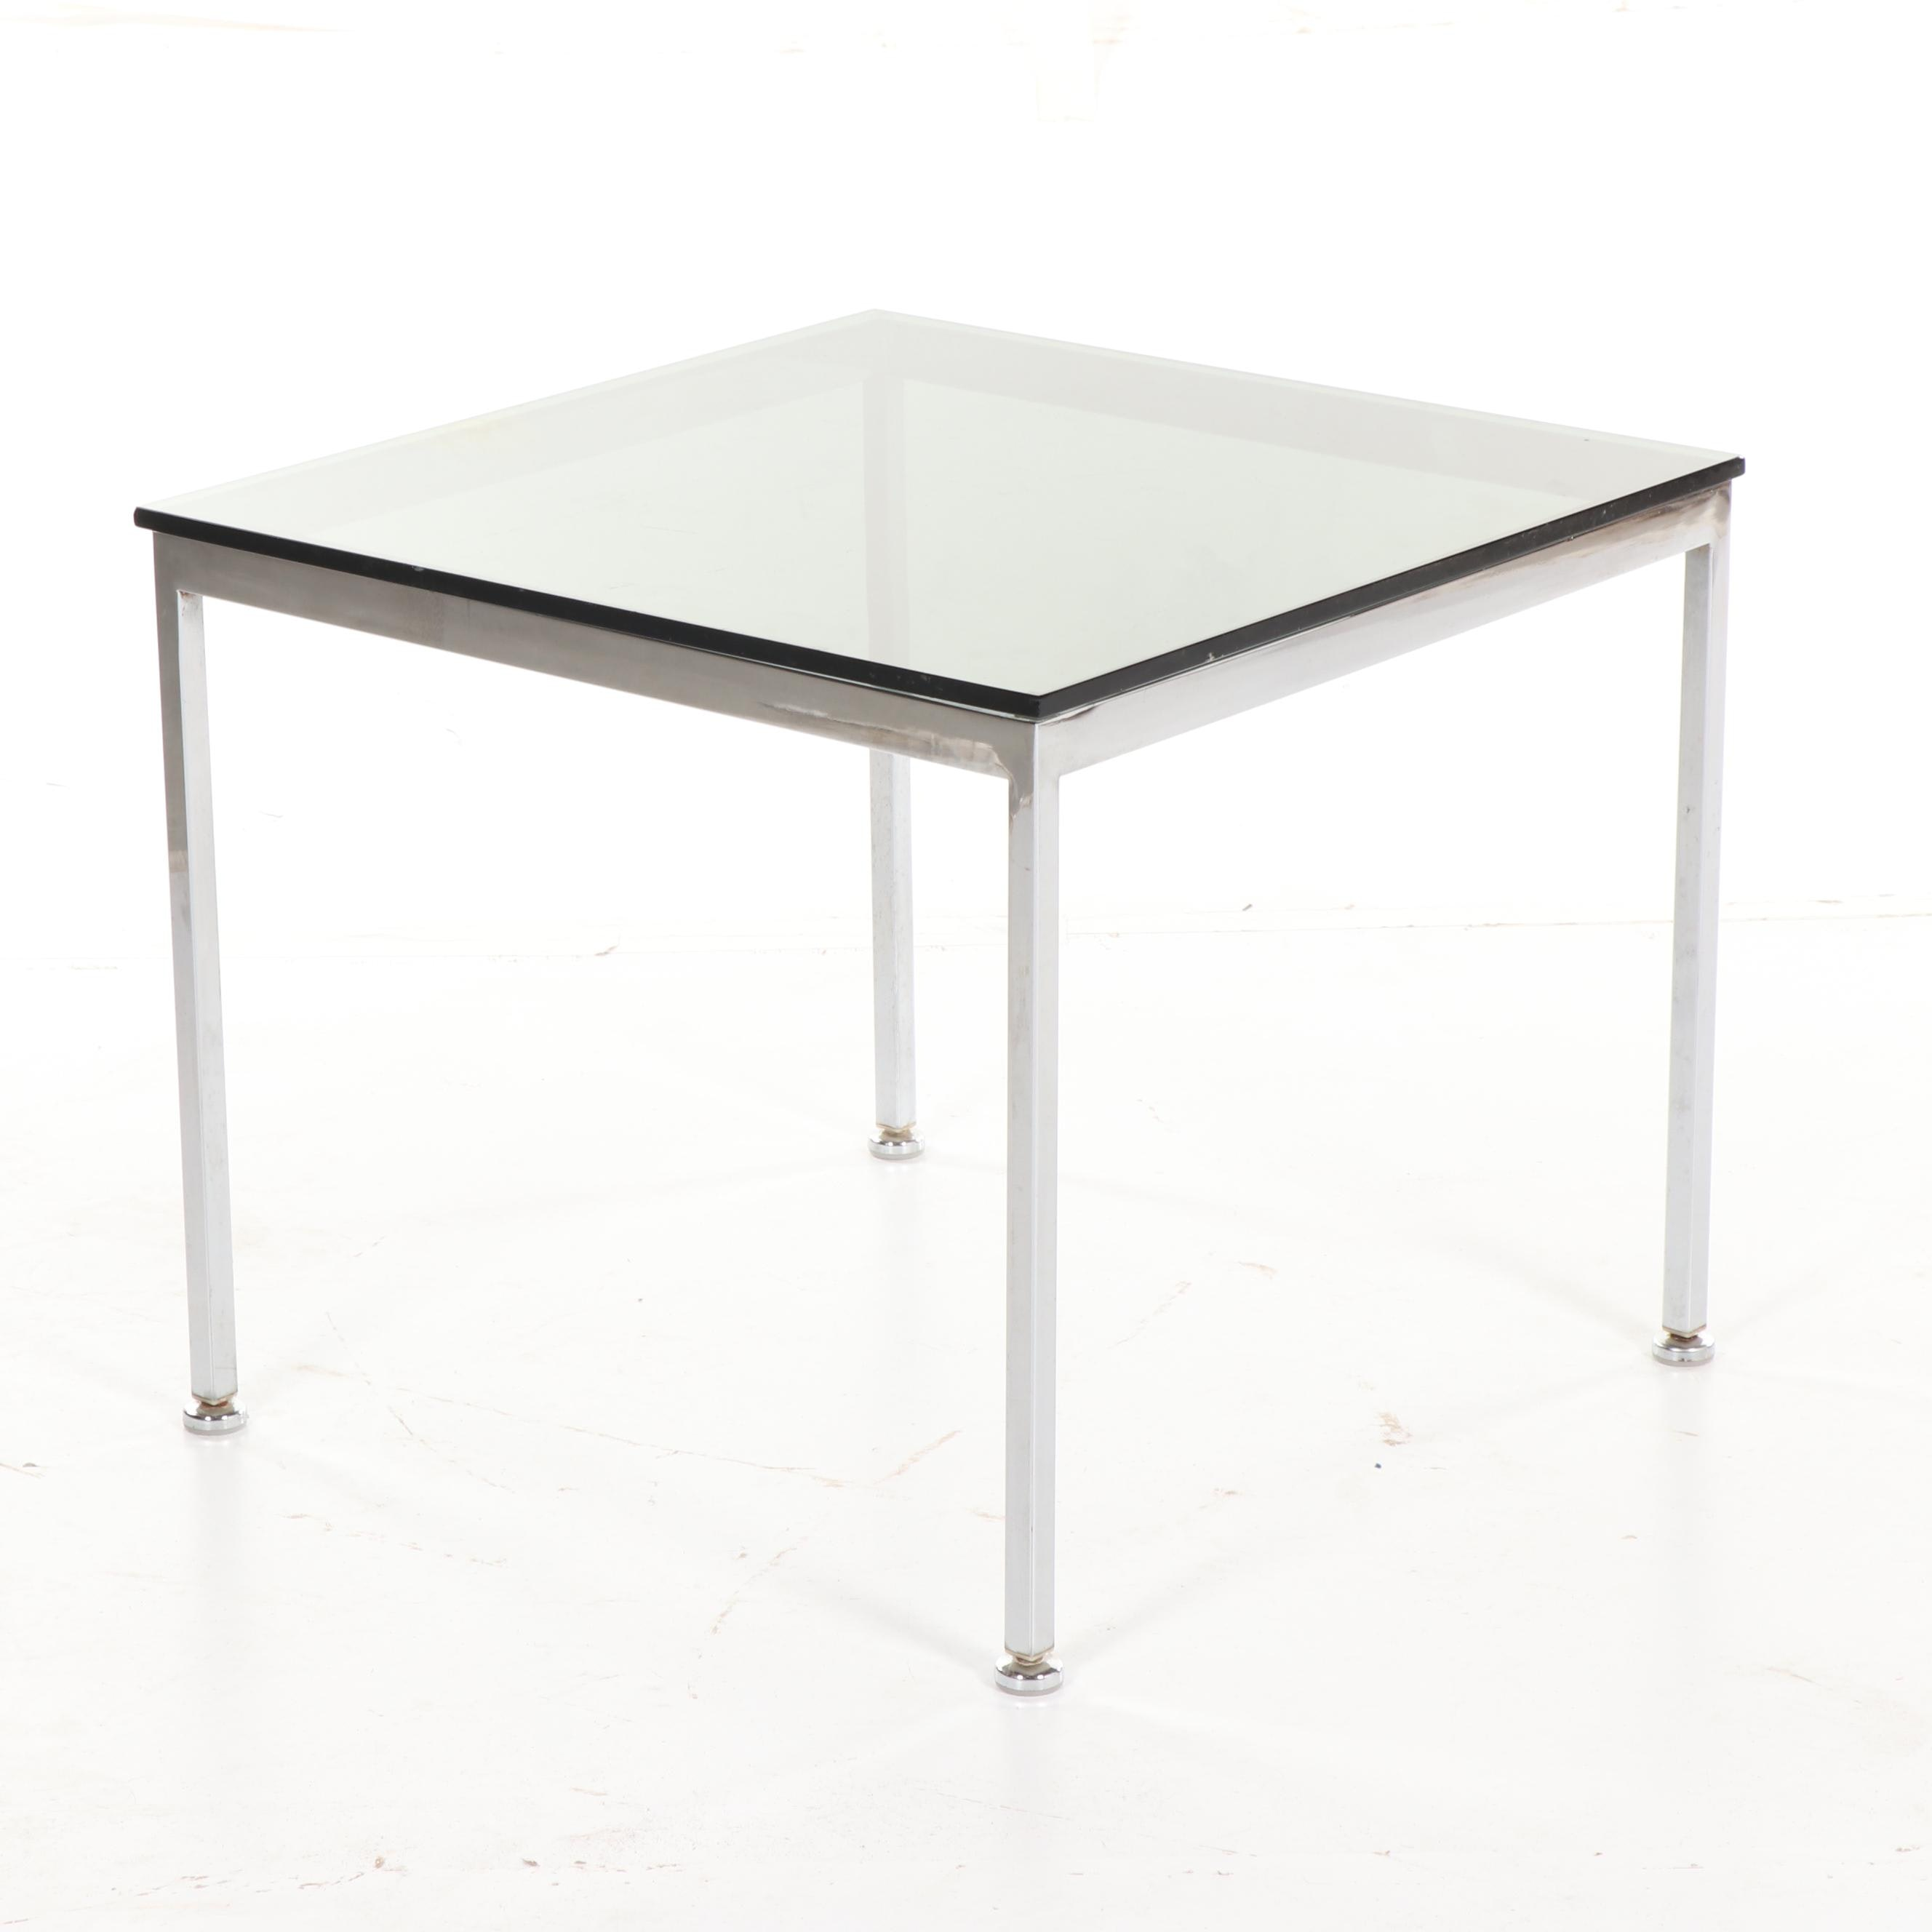 Mid Century Modern Style Smoke Glass Top Metal Side Table, 20th Century